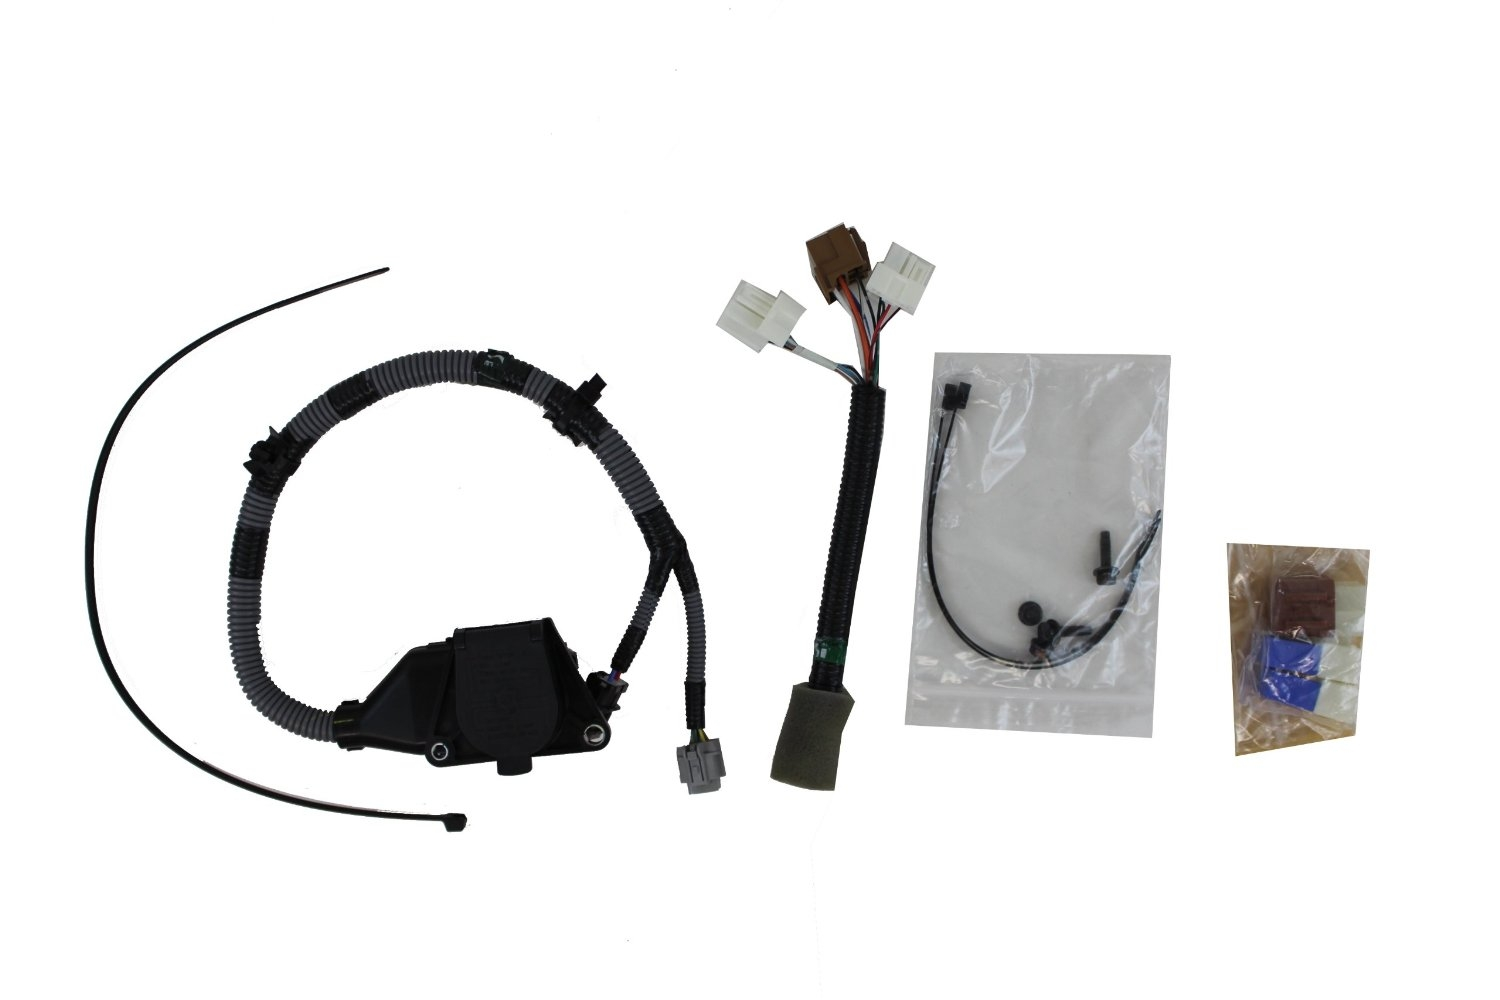 Wiring Harness Kit For Towing 2017 Nissan Frontier 54 999t8 Br020a Br020 2005 7 Way Round Trailer Tow At Highcare